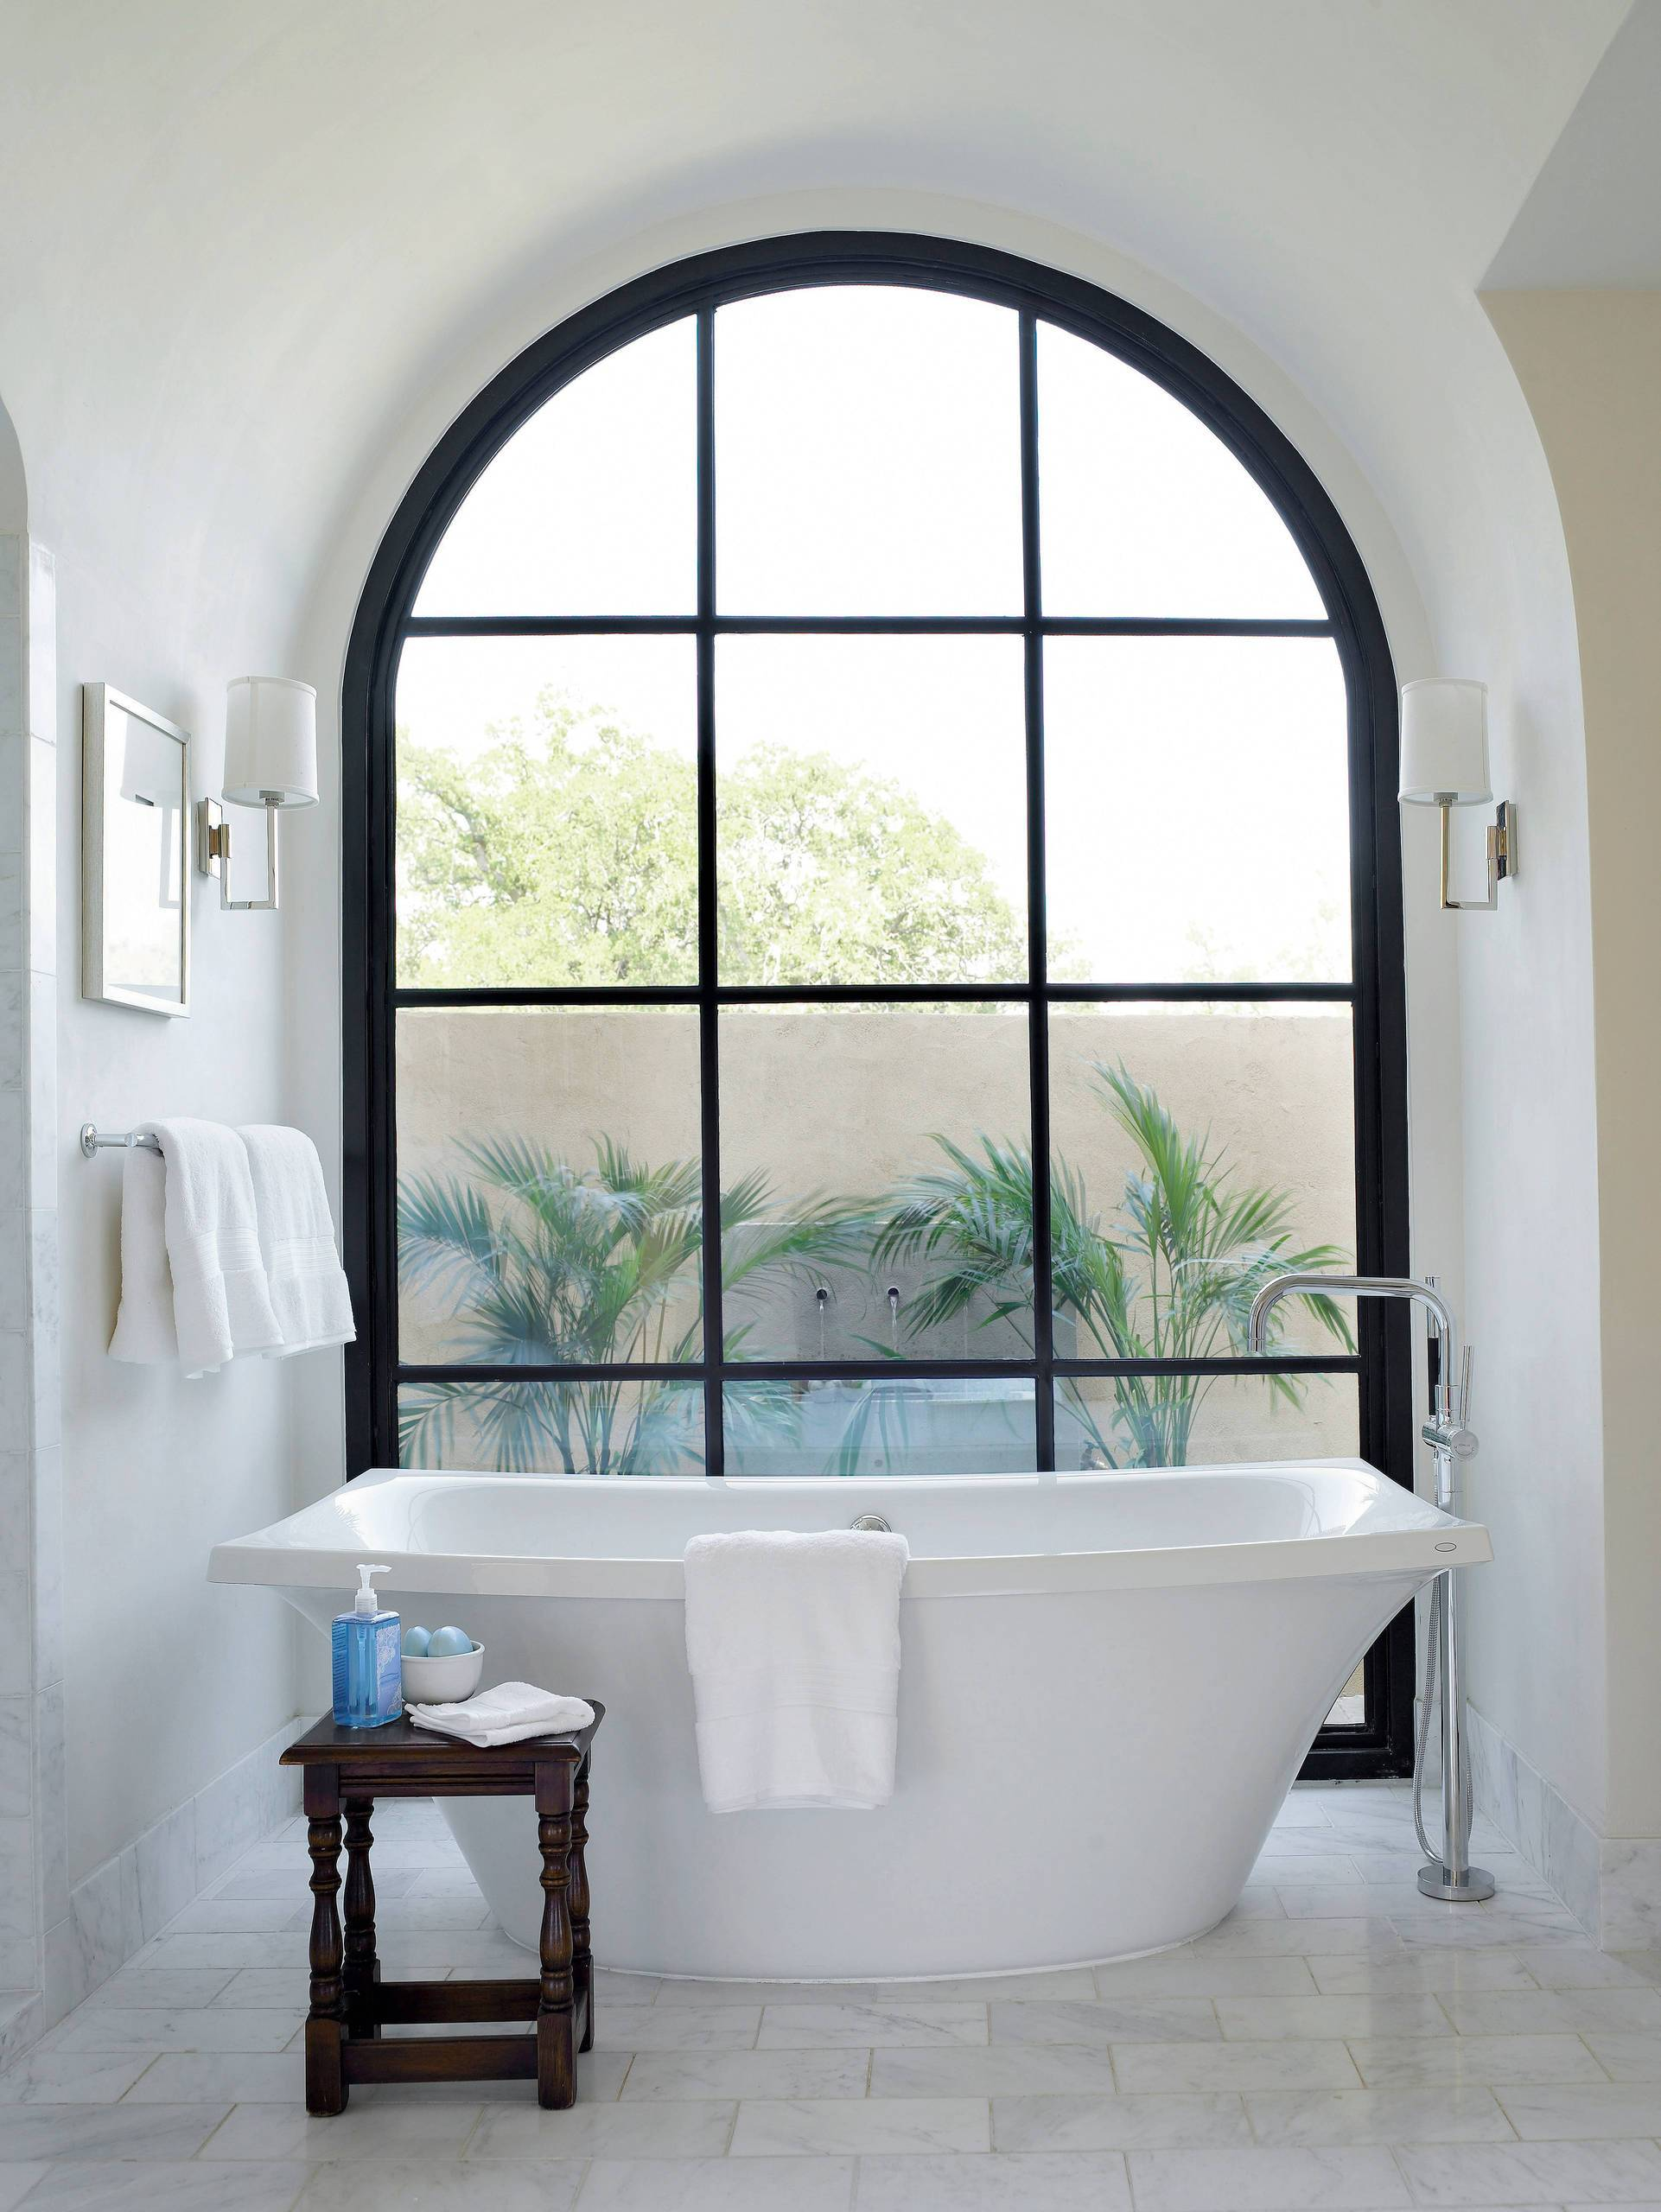 More-modern-take-on-the-classic-arched-window-for-the-contemporary-bathroom-96945